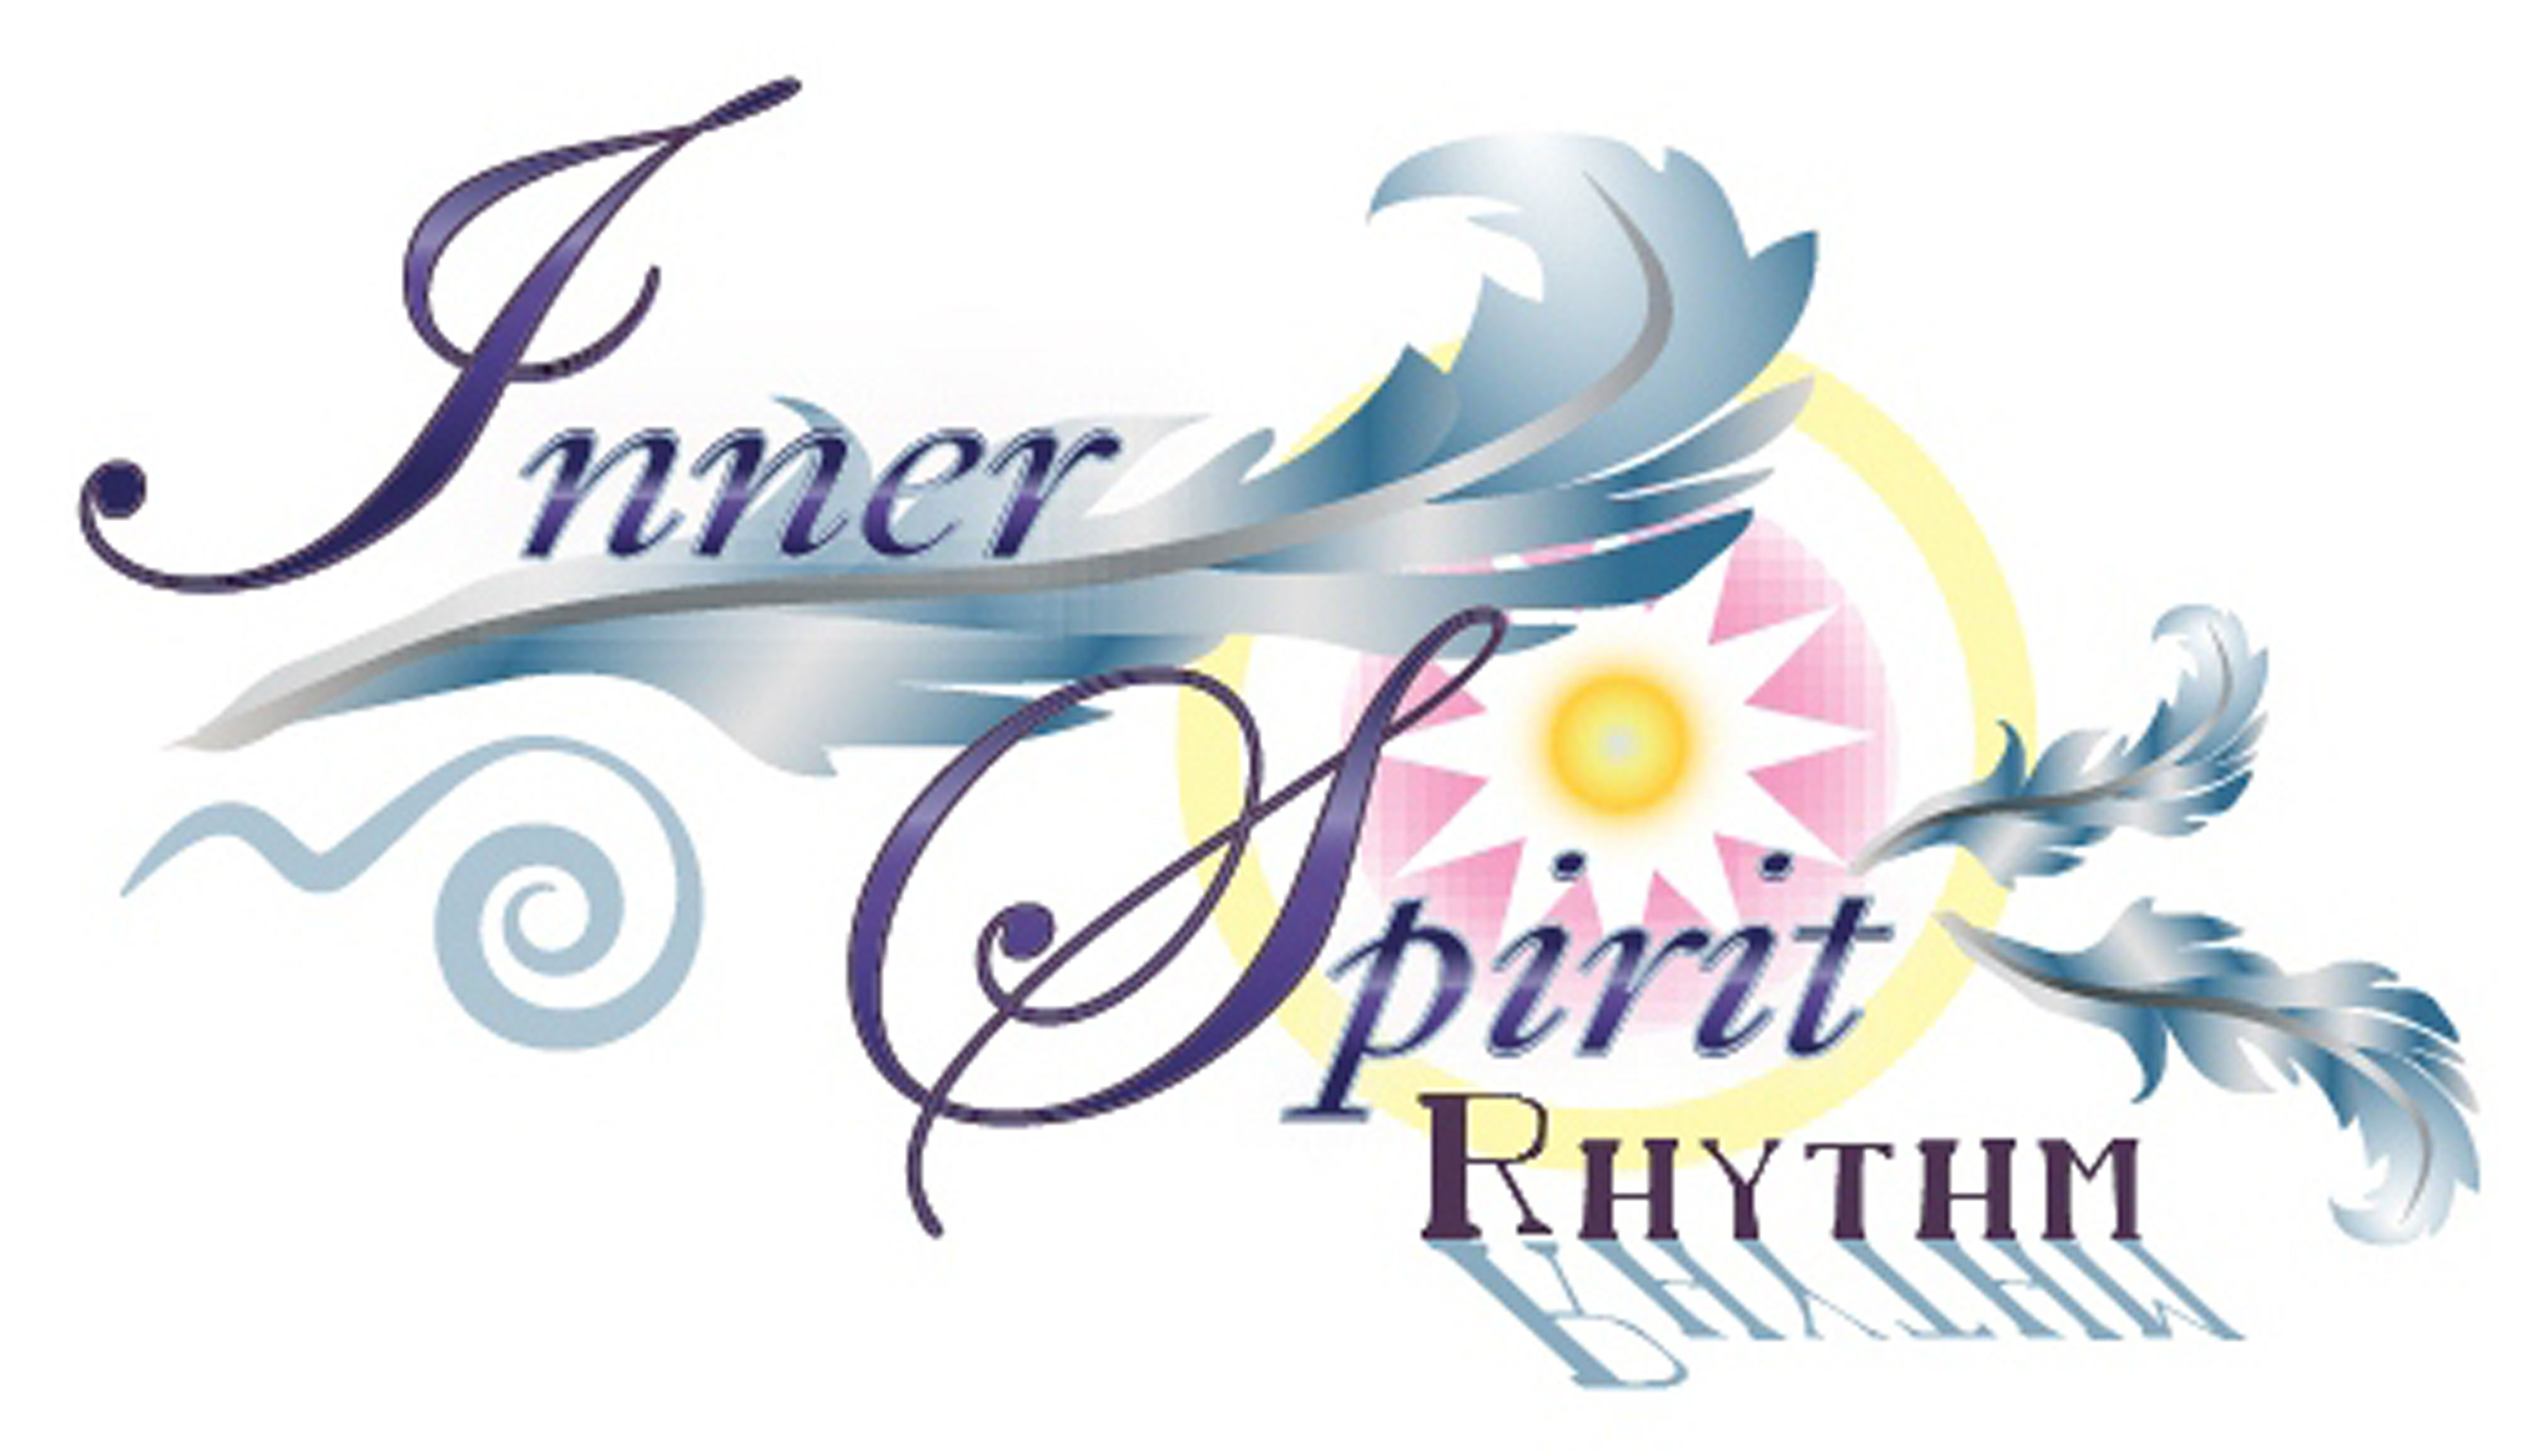 Lisa promotes self empowerment through spiritual awareness -  Intuitive life reading sessions visit Inner Spirit Rhythm http://www.innerspiritrhythm.com/